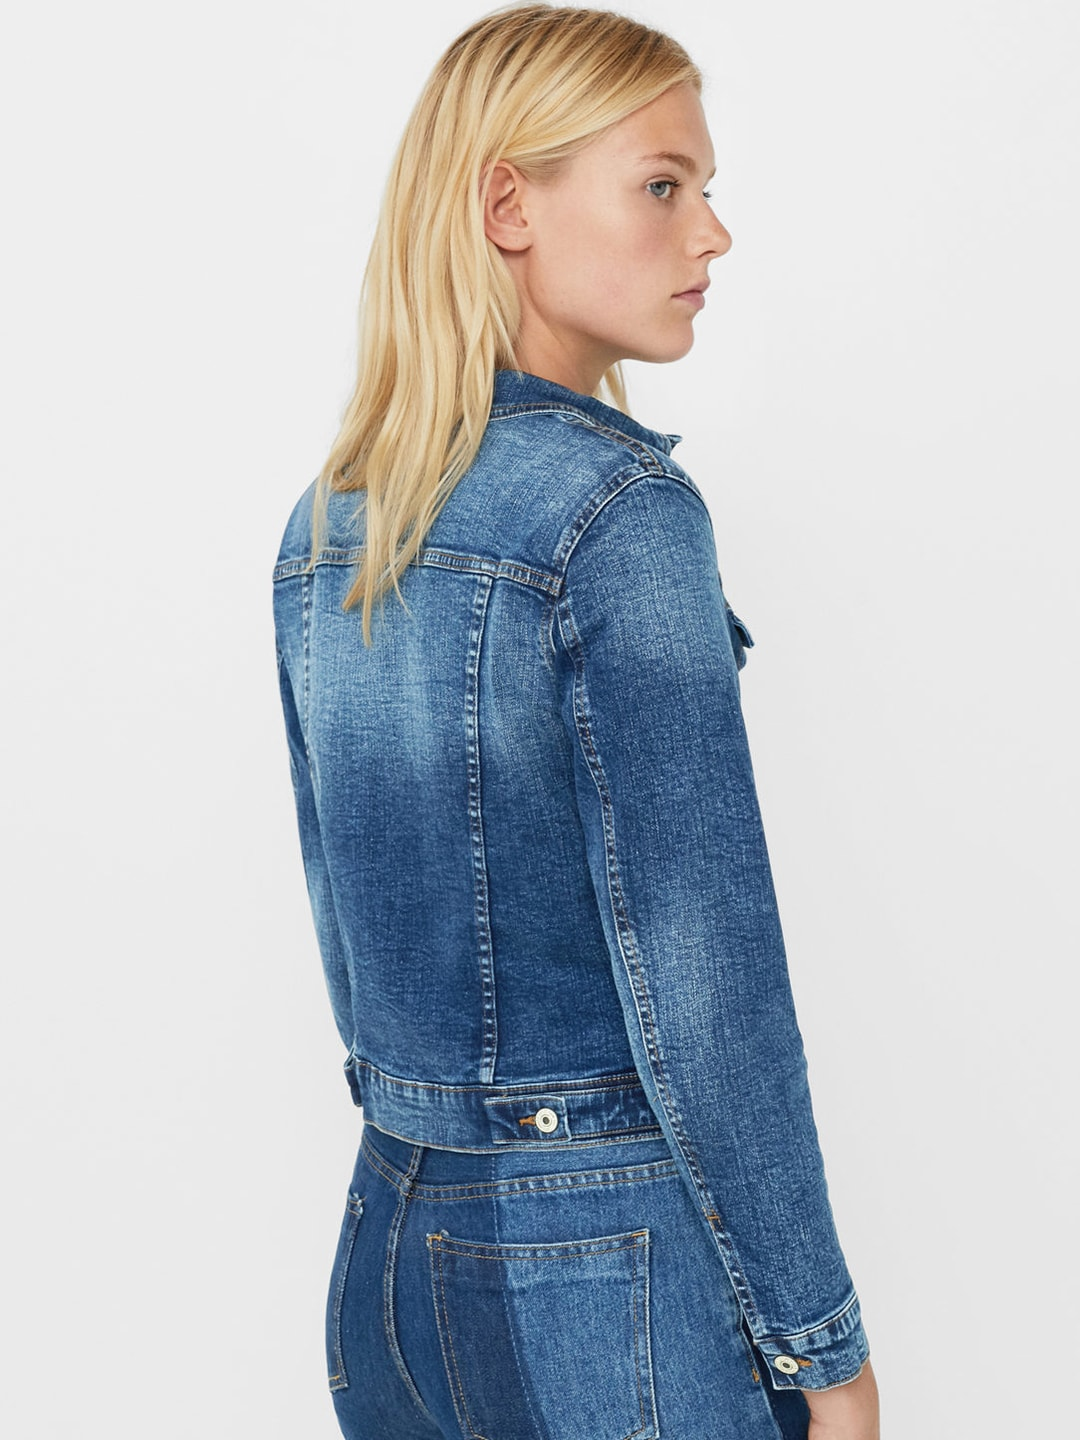 paydayloansonlinesameday.ga offers Denim Jackets For Women at cheap prices, so you can shop from a huge selection of Denim Jackets For Women, FREE Shipping available worldwide.